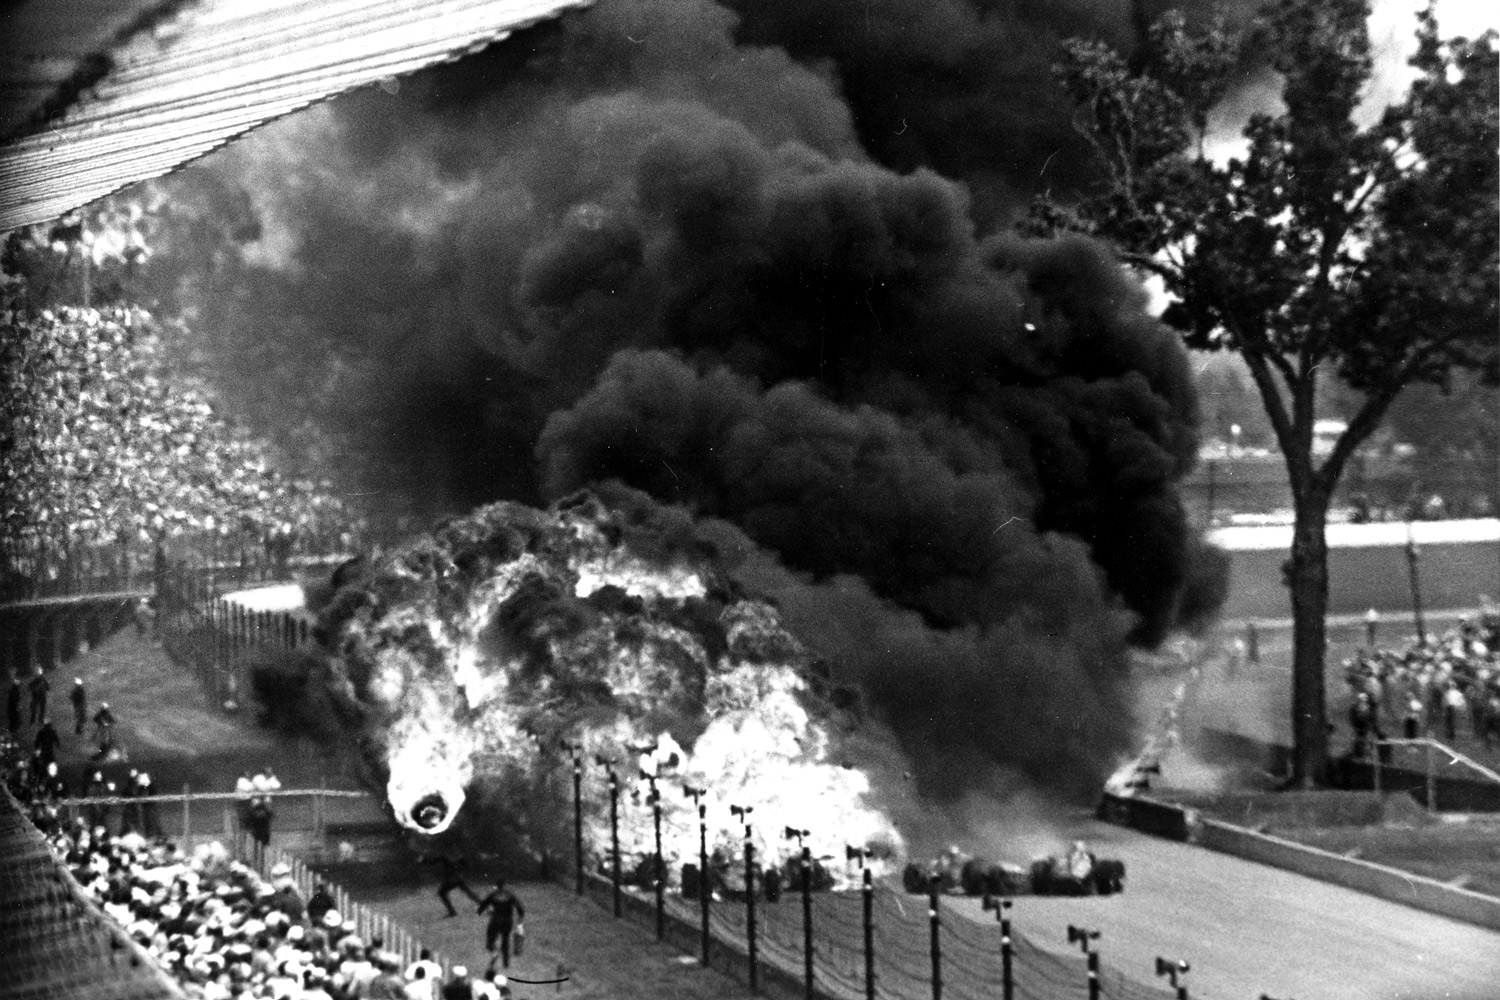 Black clouds of gloom hung over the Speedway after the deadly '64 crash, the first time the Indy 500 was halted for an accident. The second was two years later, when no one died, but rookie Jackie Stewart endured heartbreak; he led 40 laps before late mechanical failure ended his title hopes.